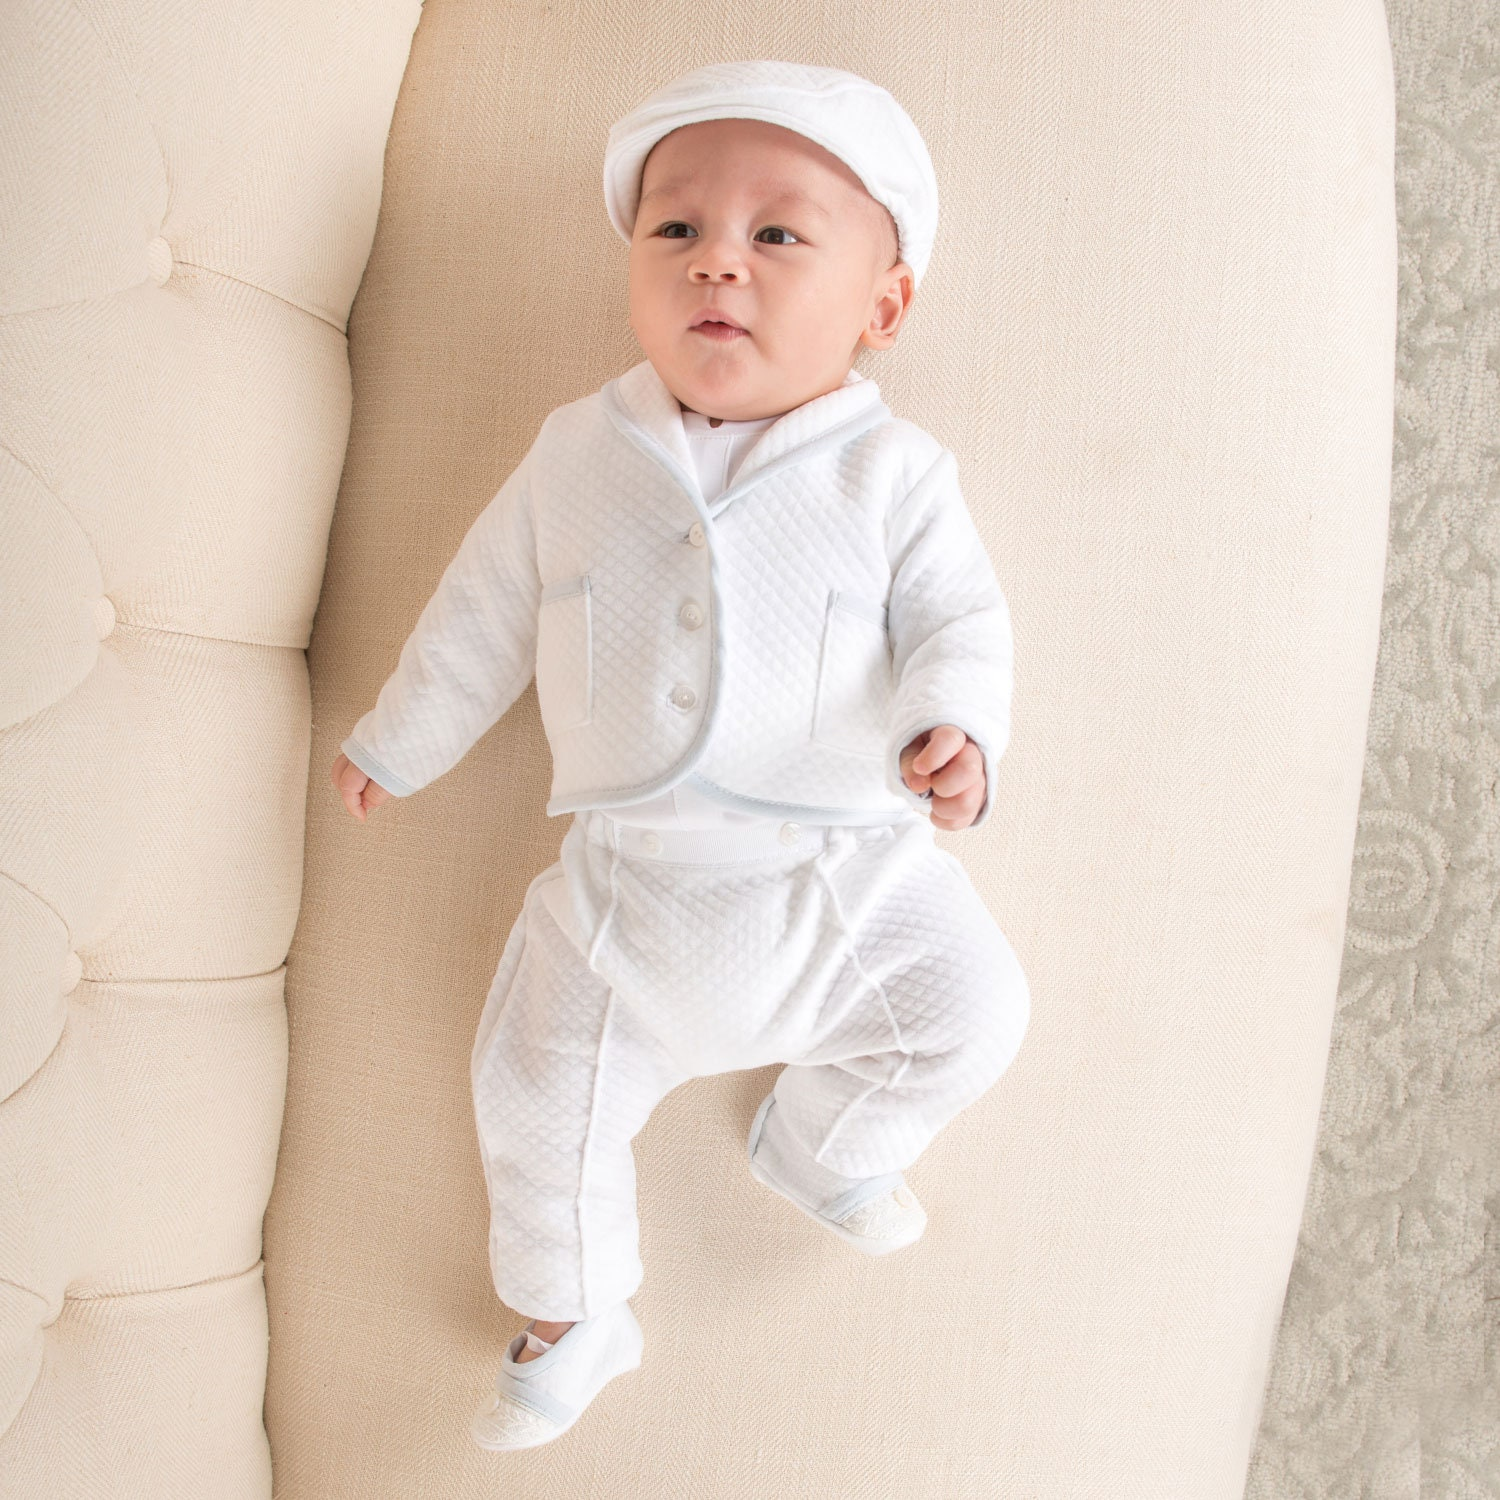 504a77b133a95 Baby Boys Christening Outfit Suit 'Harrison' Boys   Etsy